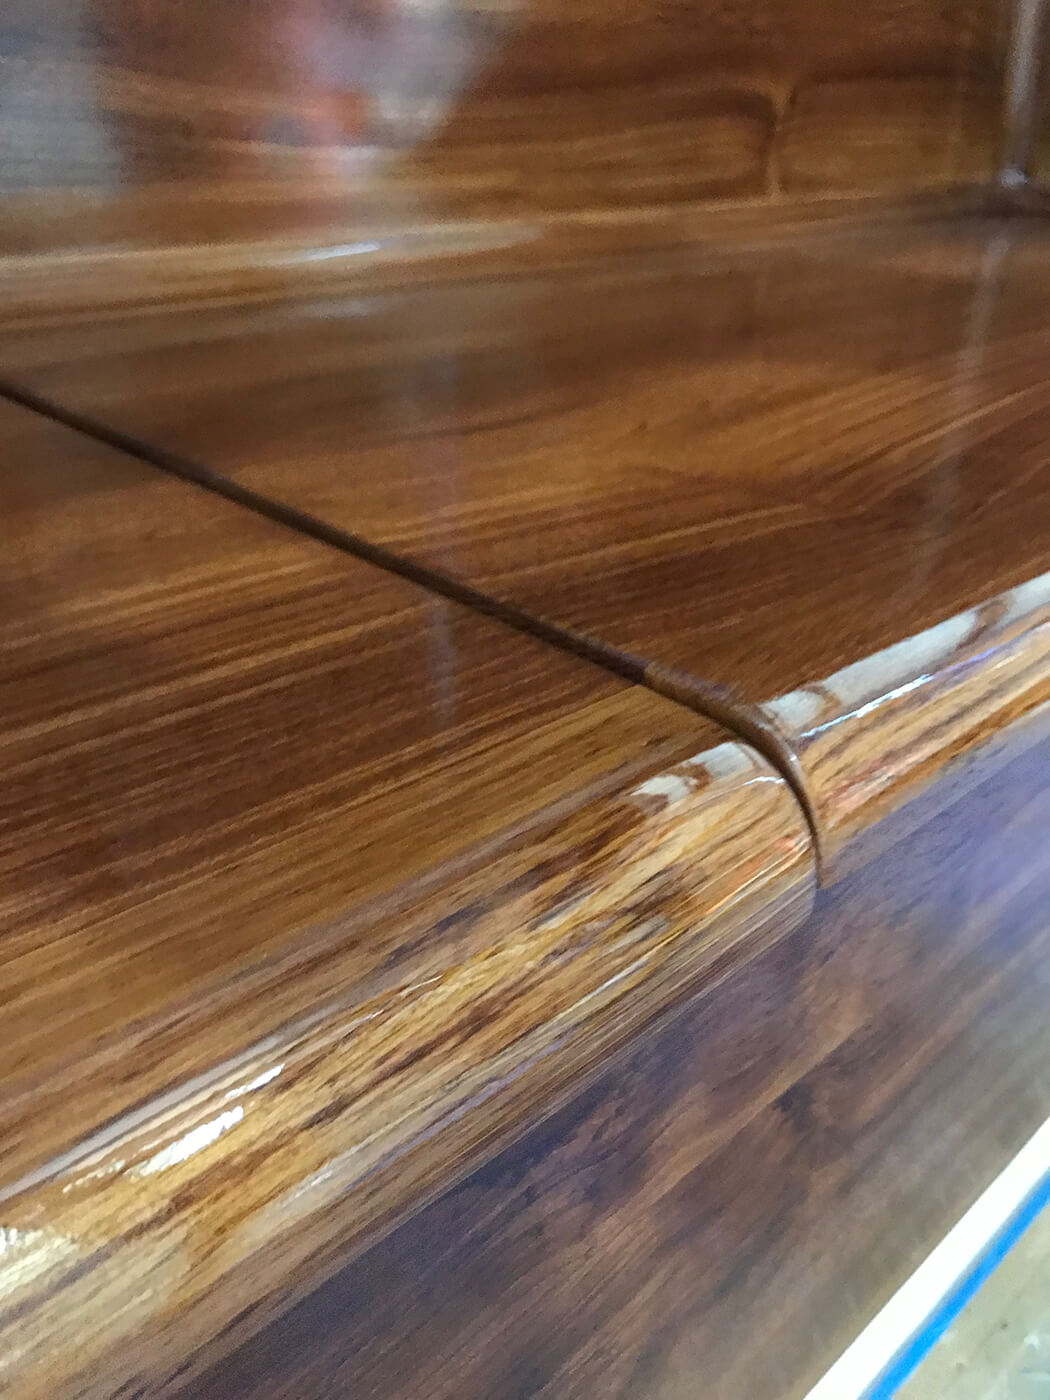 Smooth Move New Orleans Faux Teak bullnose bulkhead wood